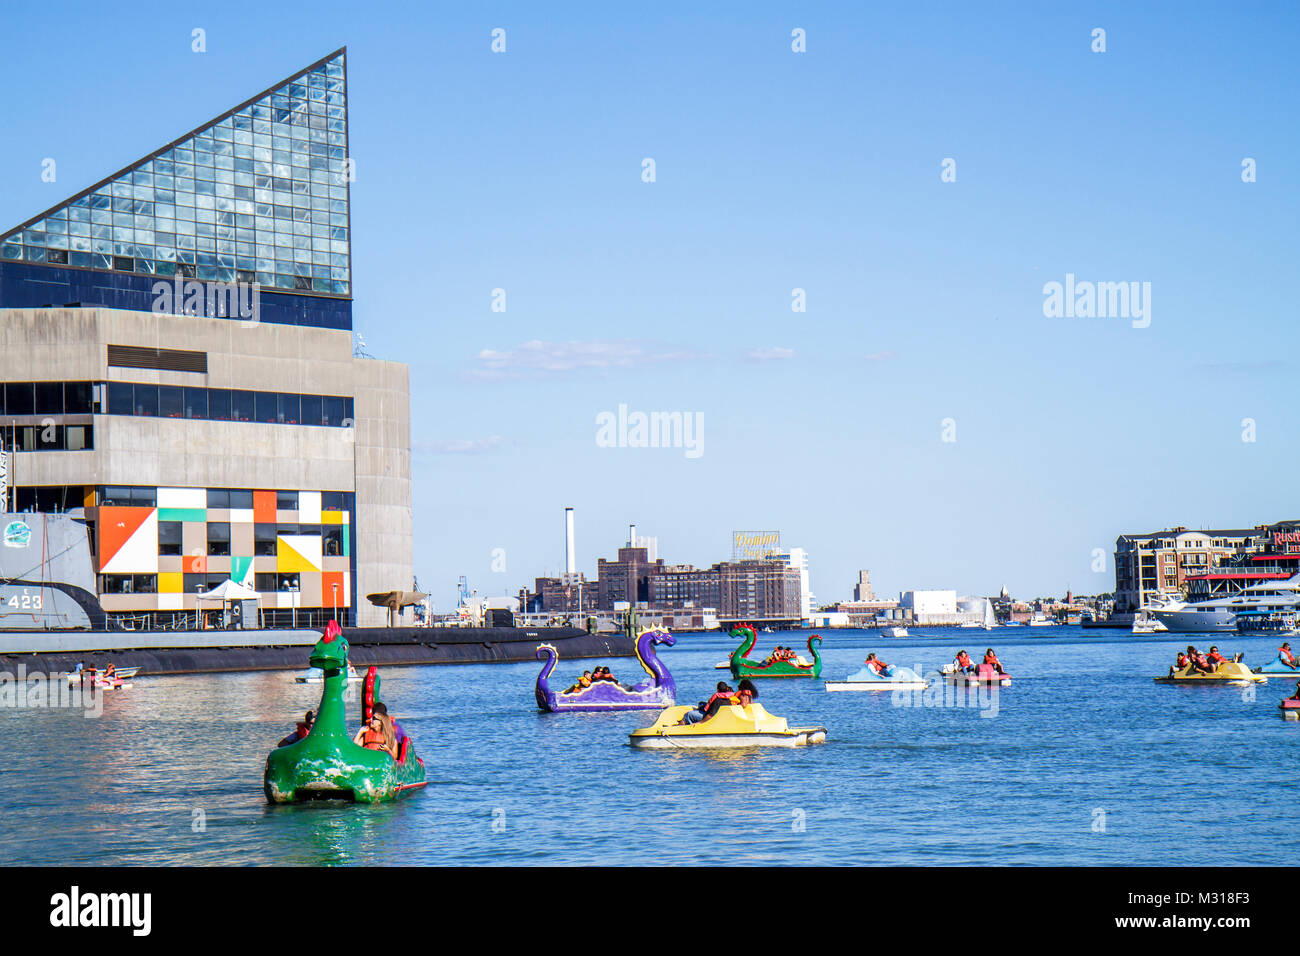 Baltimore Maryland Inner Harbor Patapsco River port waterfront Harborplace National Aquarium paddle boat ride dragon - Stock Image